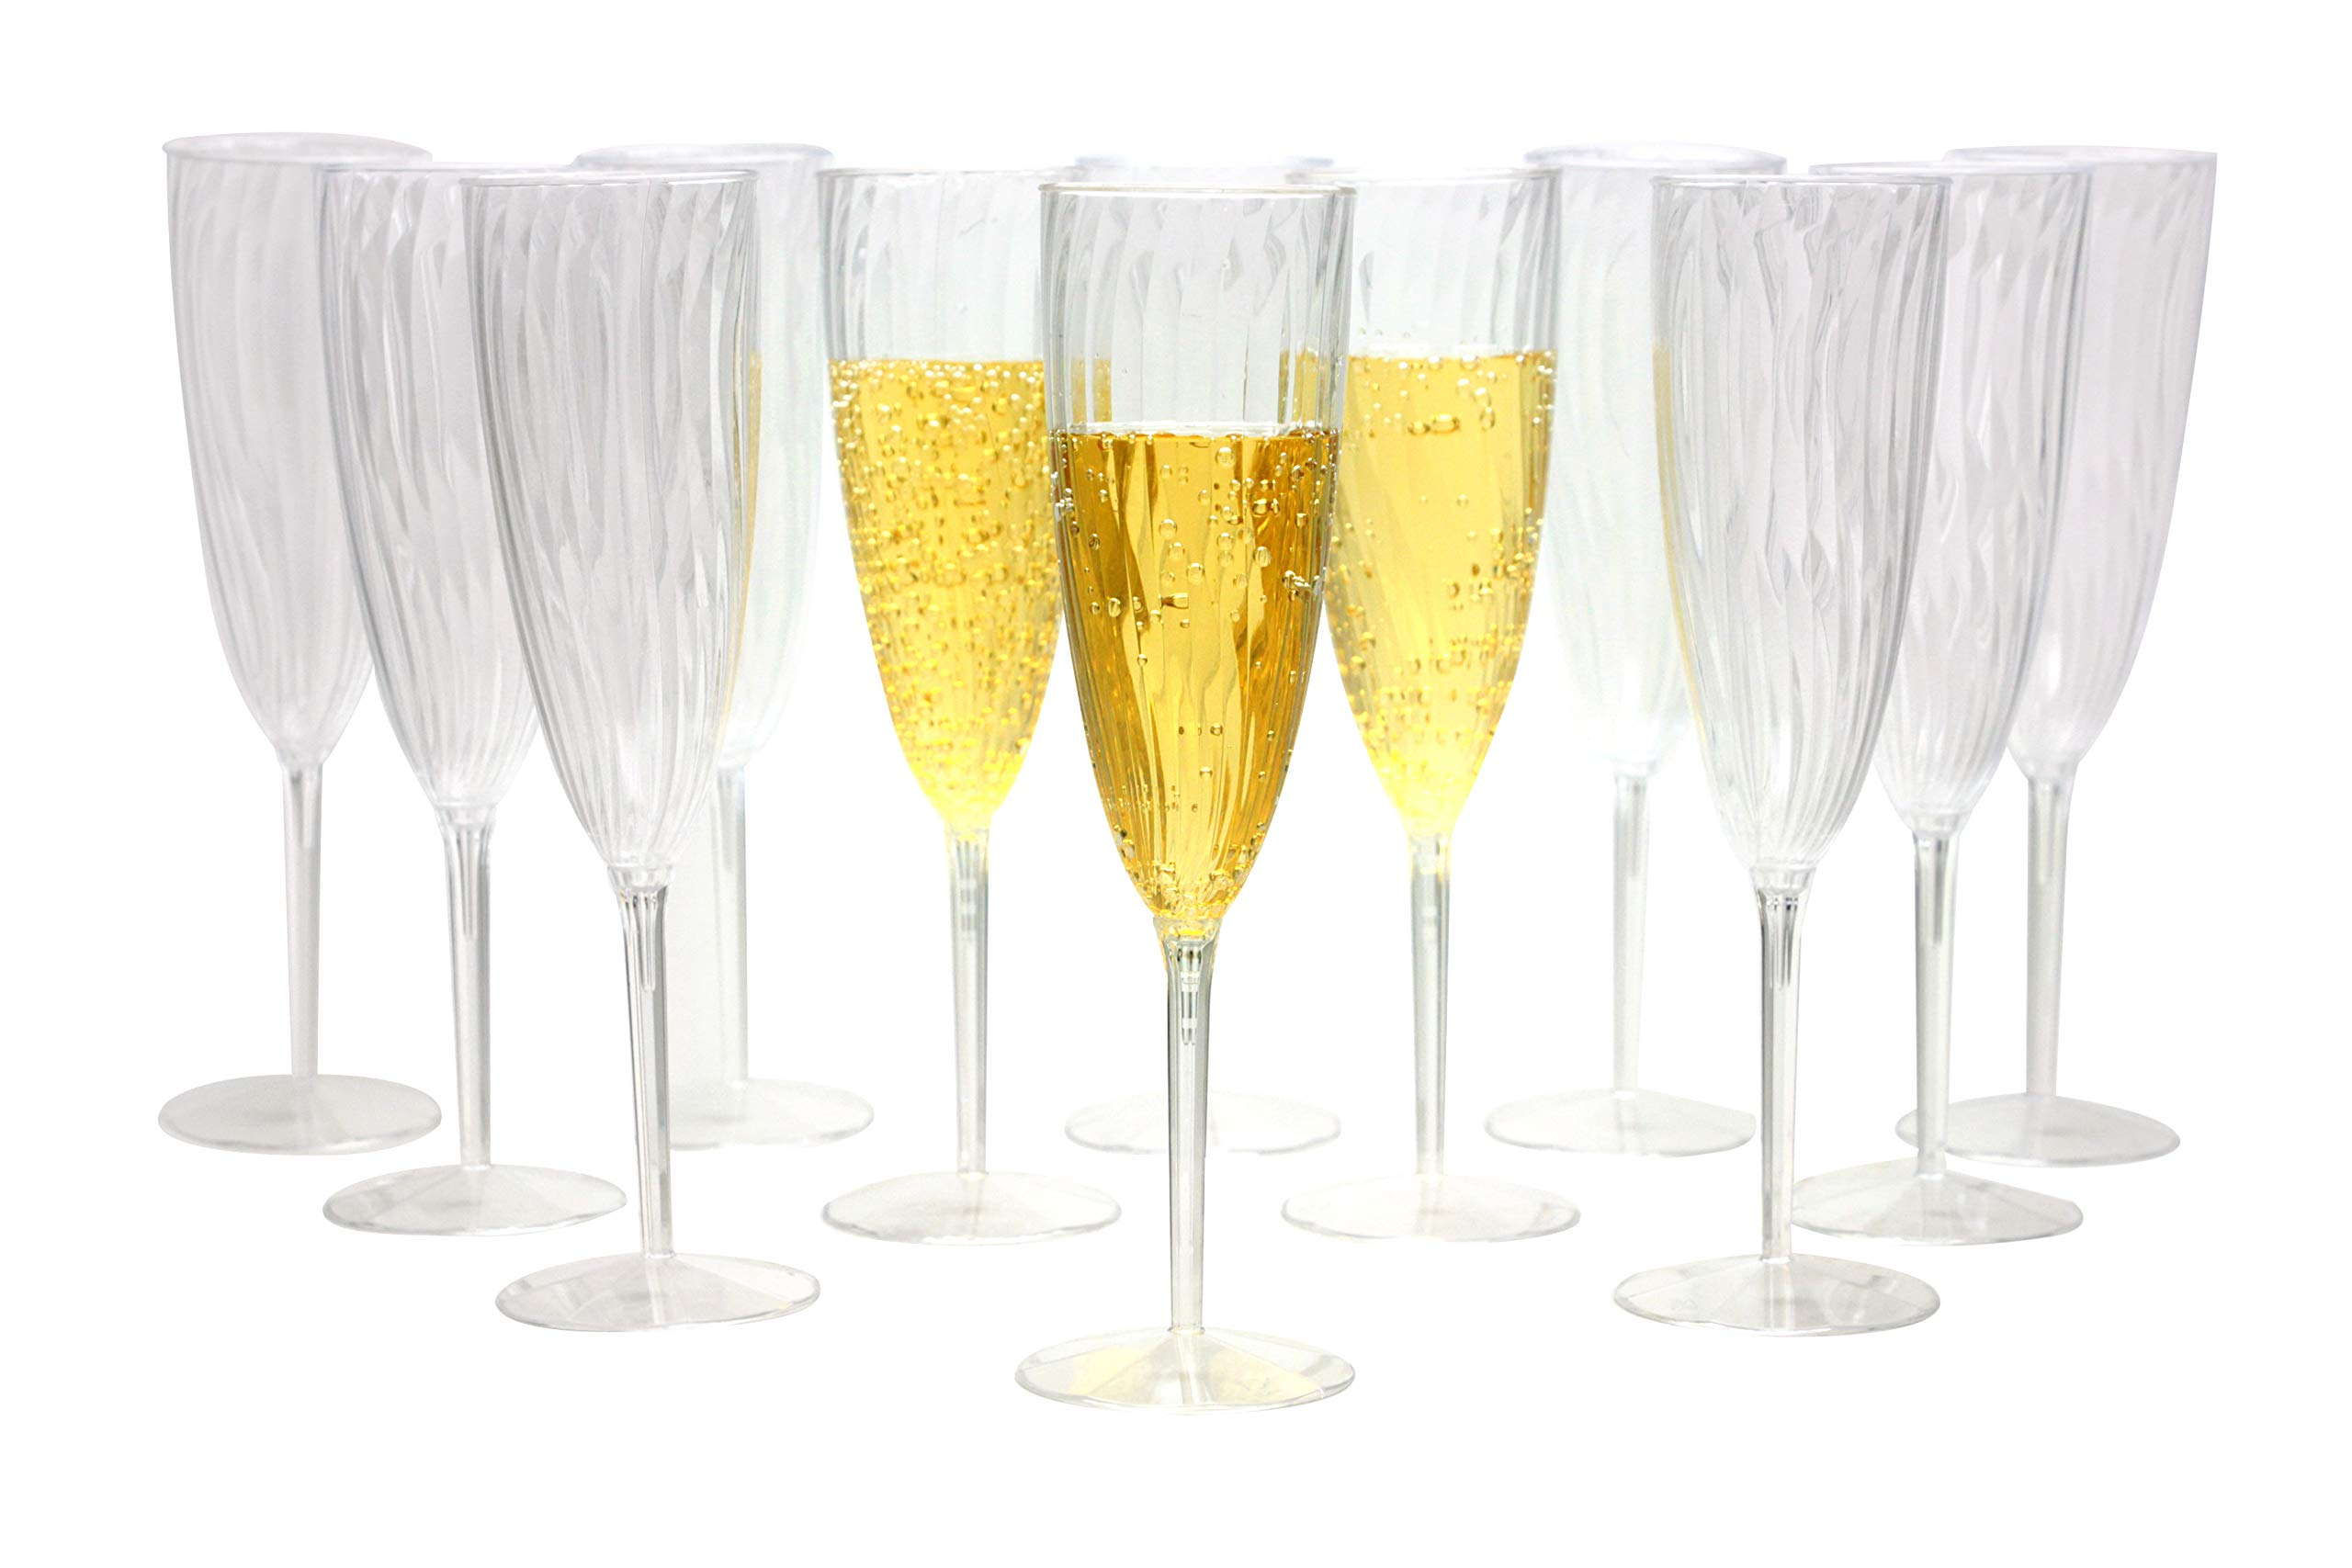 Premium Champagne Flutes 6 oz. Clear Hard Plastic Disposable Glasses, Value Box Set - 96 Count by Lillian Tablesettings